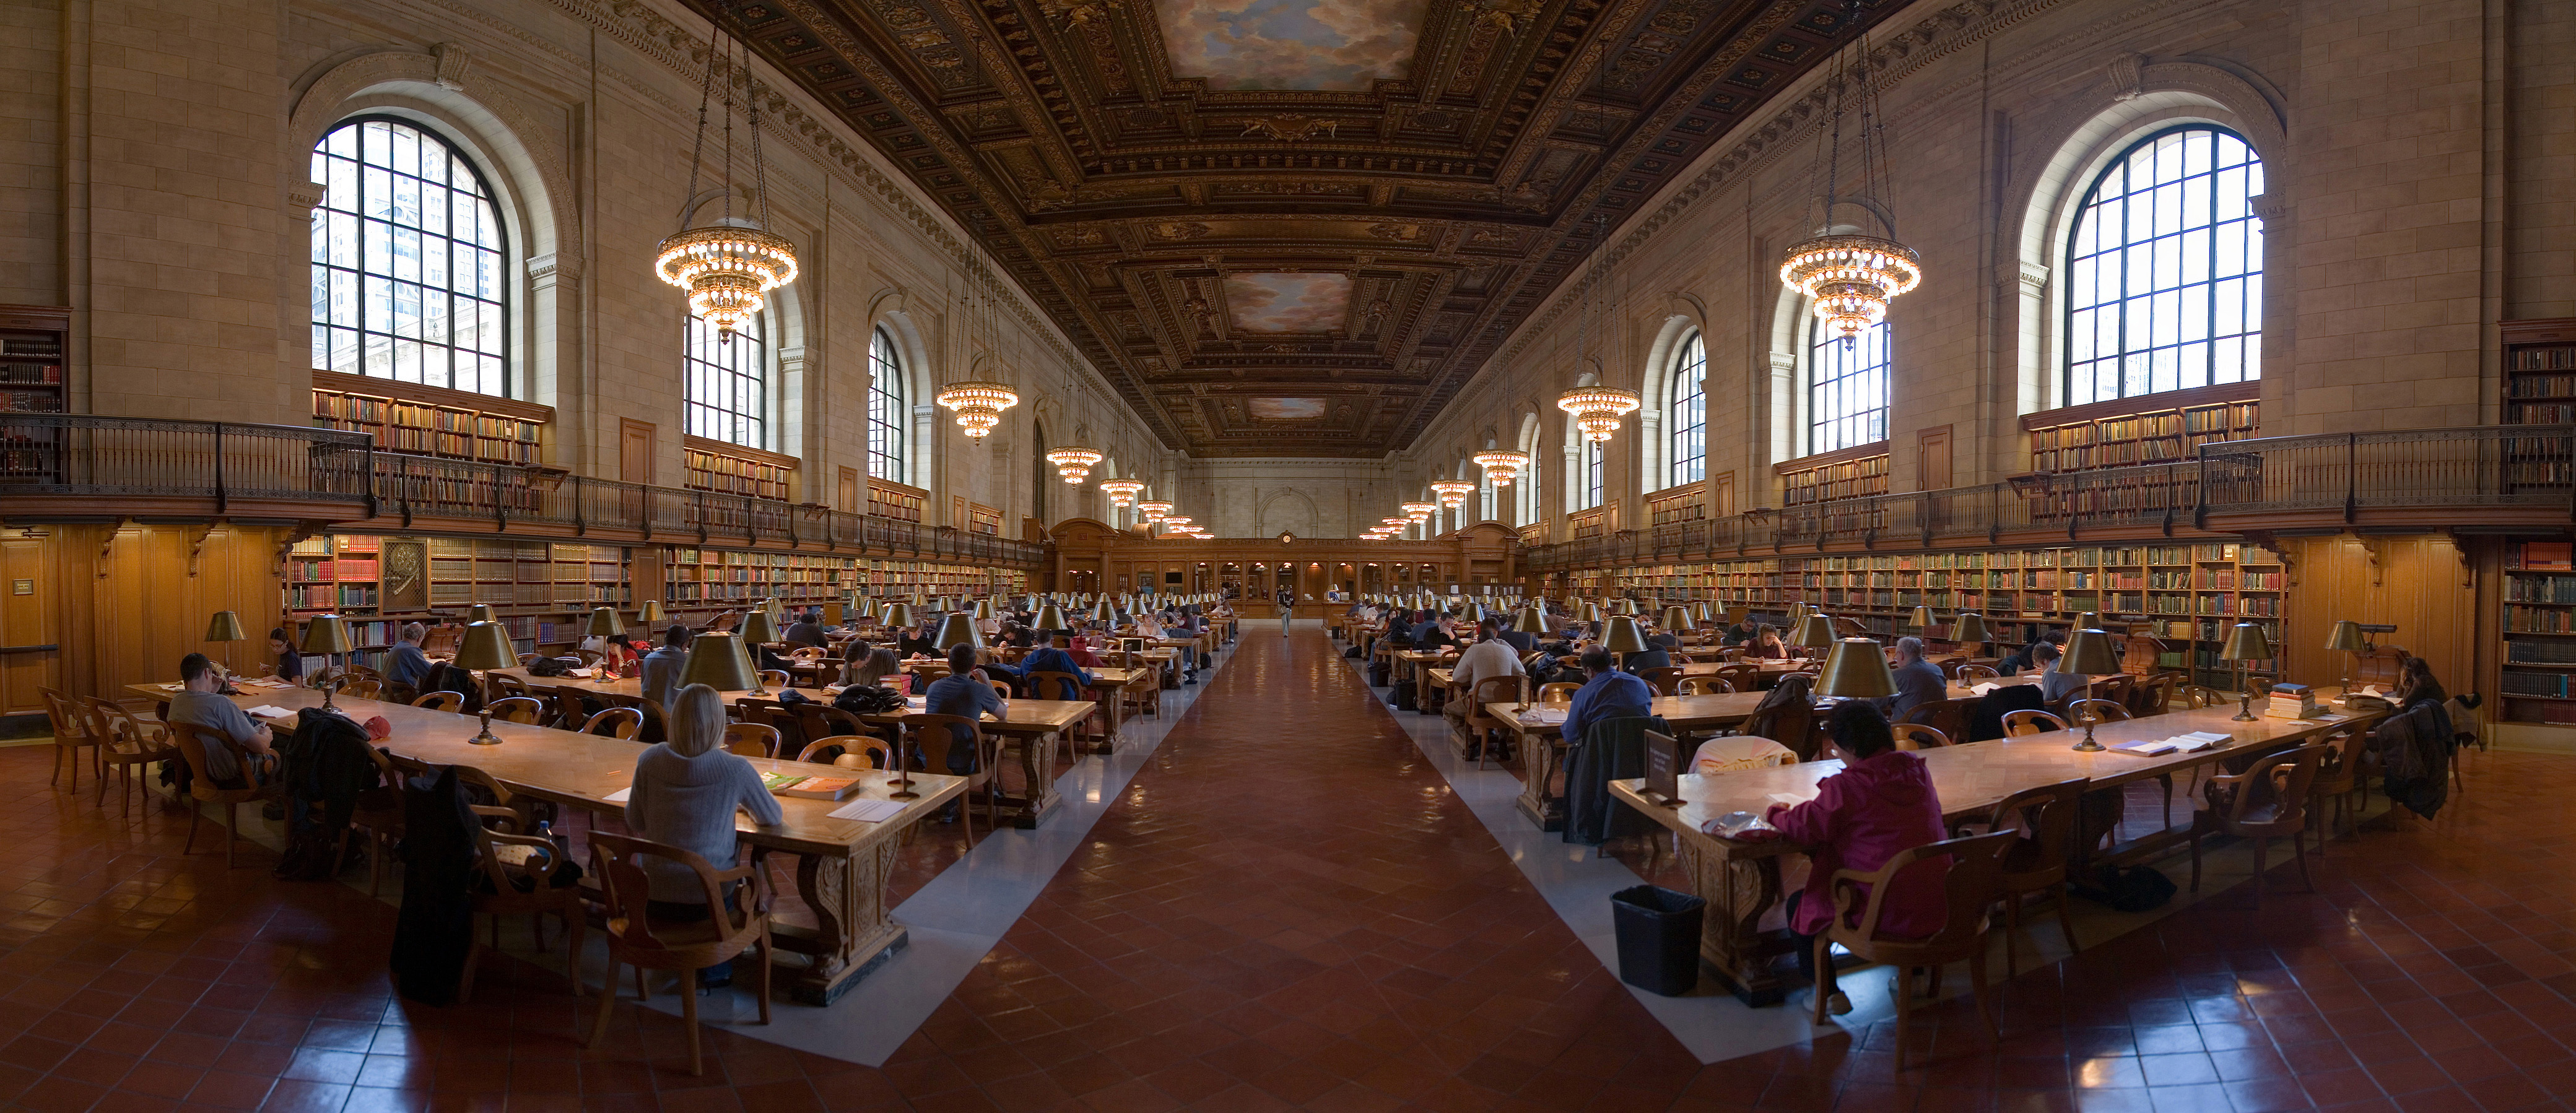 The research room at the New York public library.